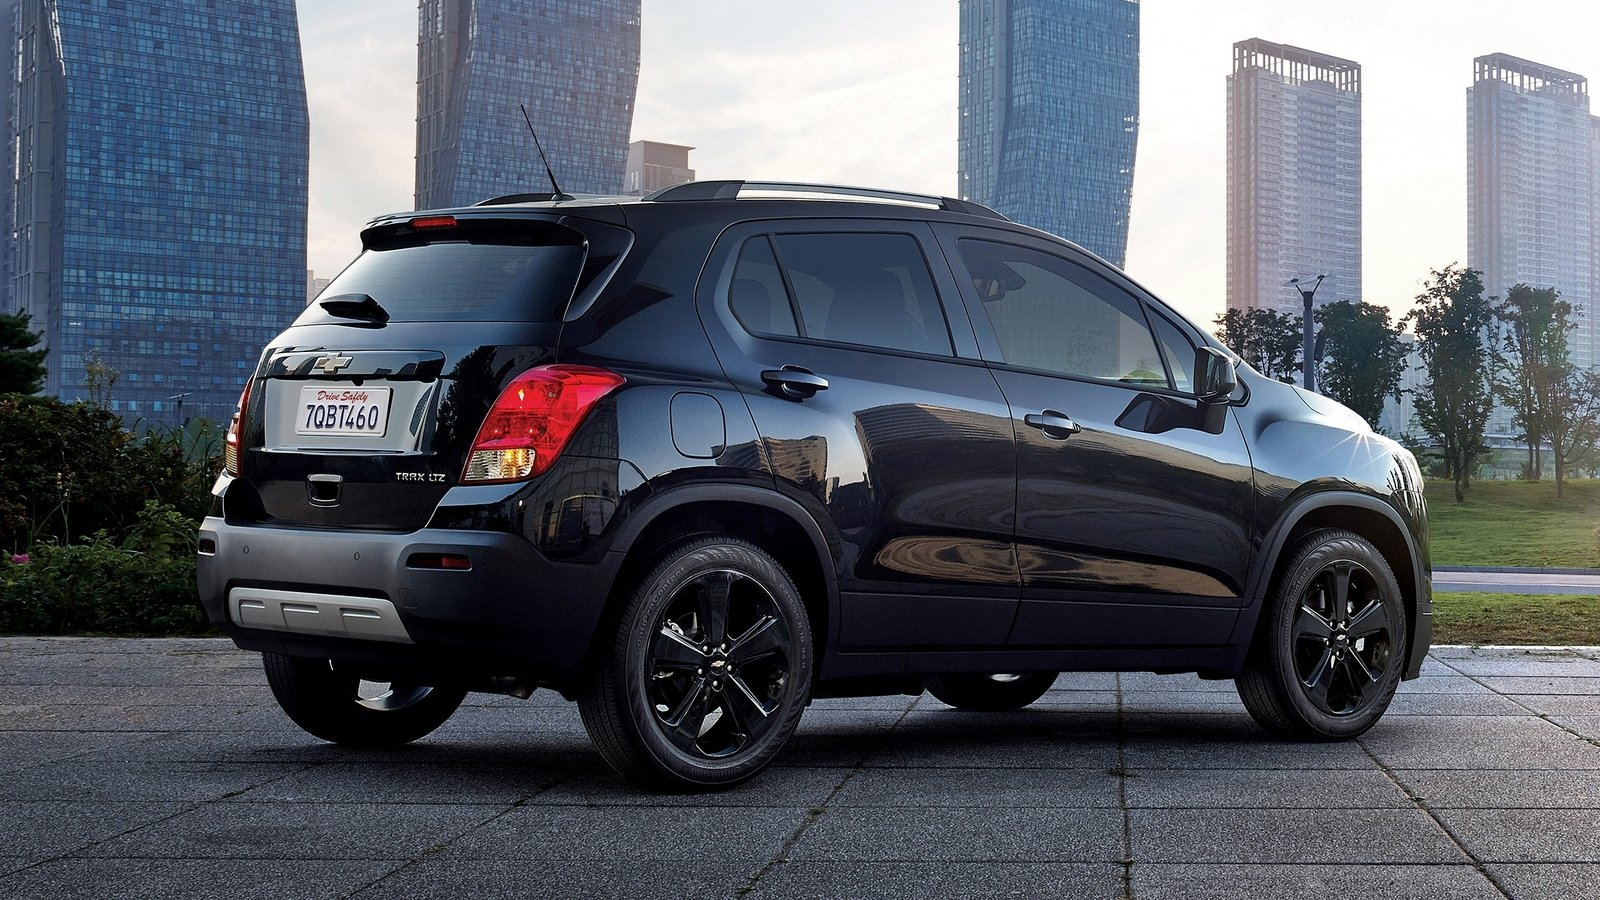 2016 chevrolet trax midnight edition review top speed. Black Bedroom Furniture Sets. Home Design Ideas